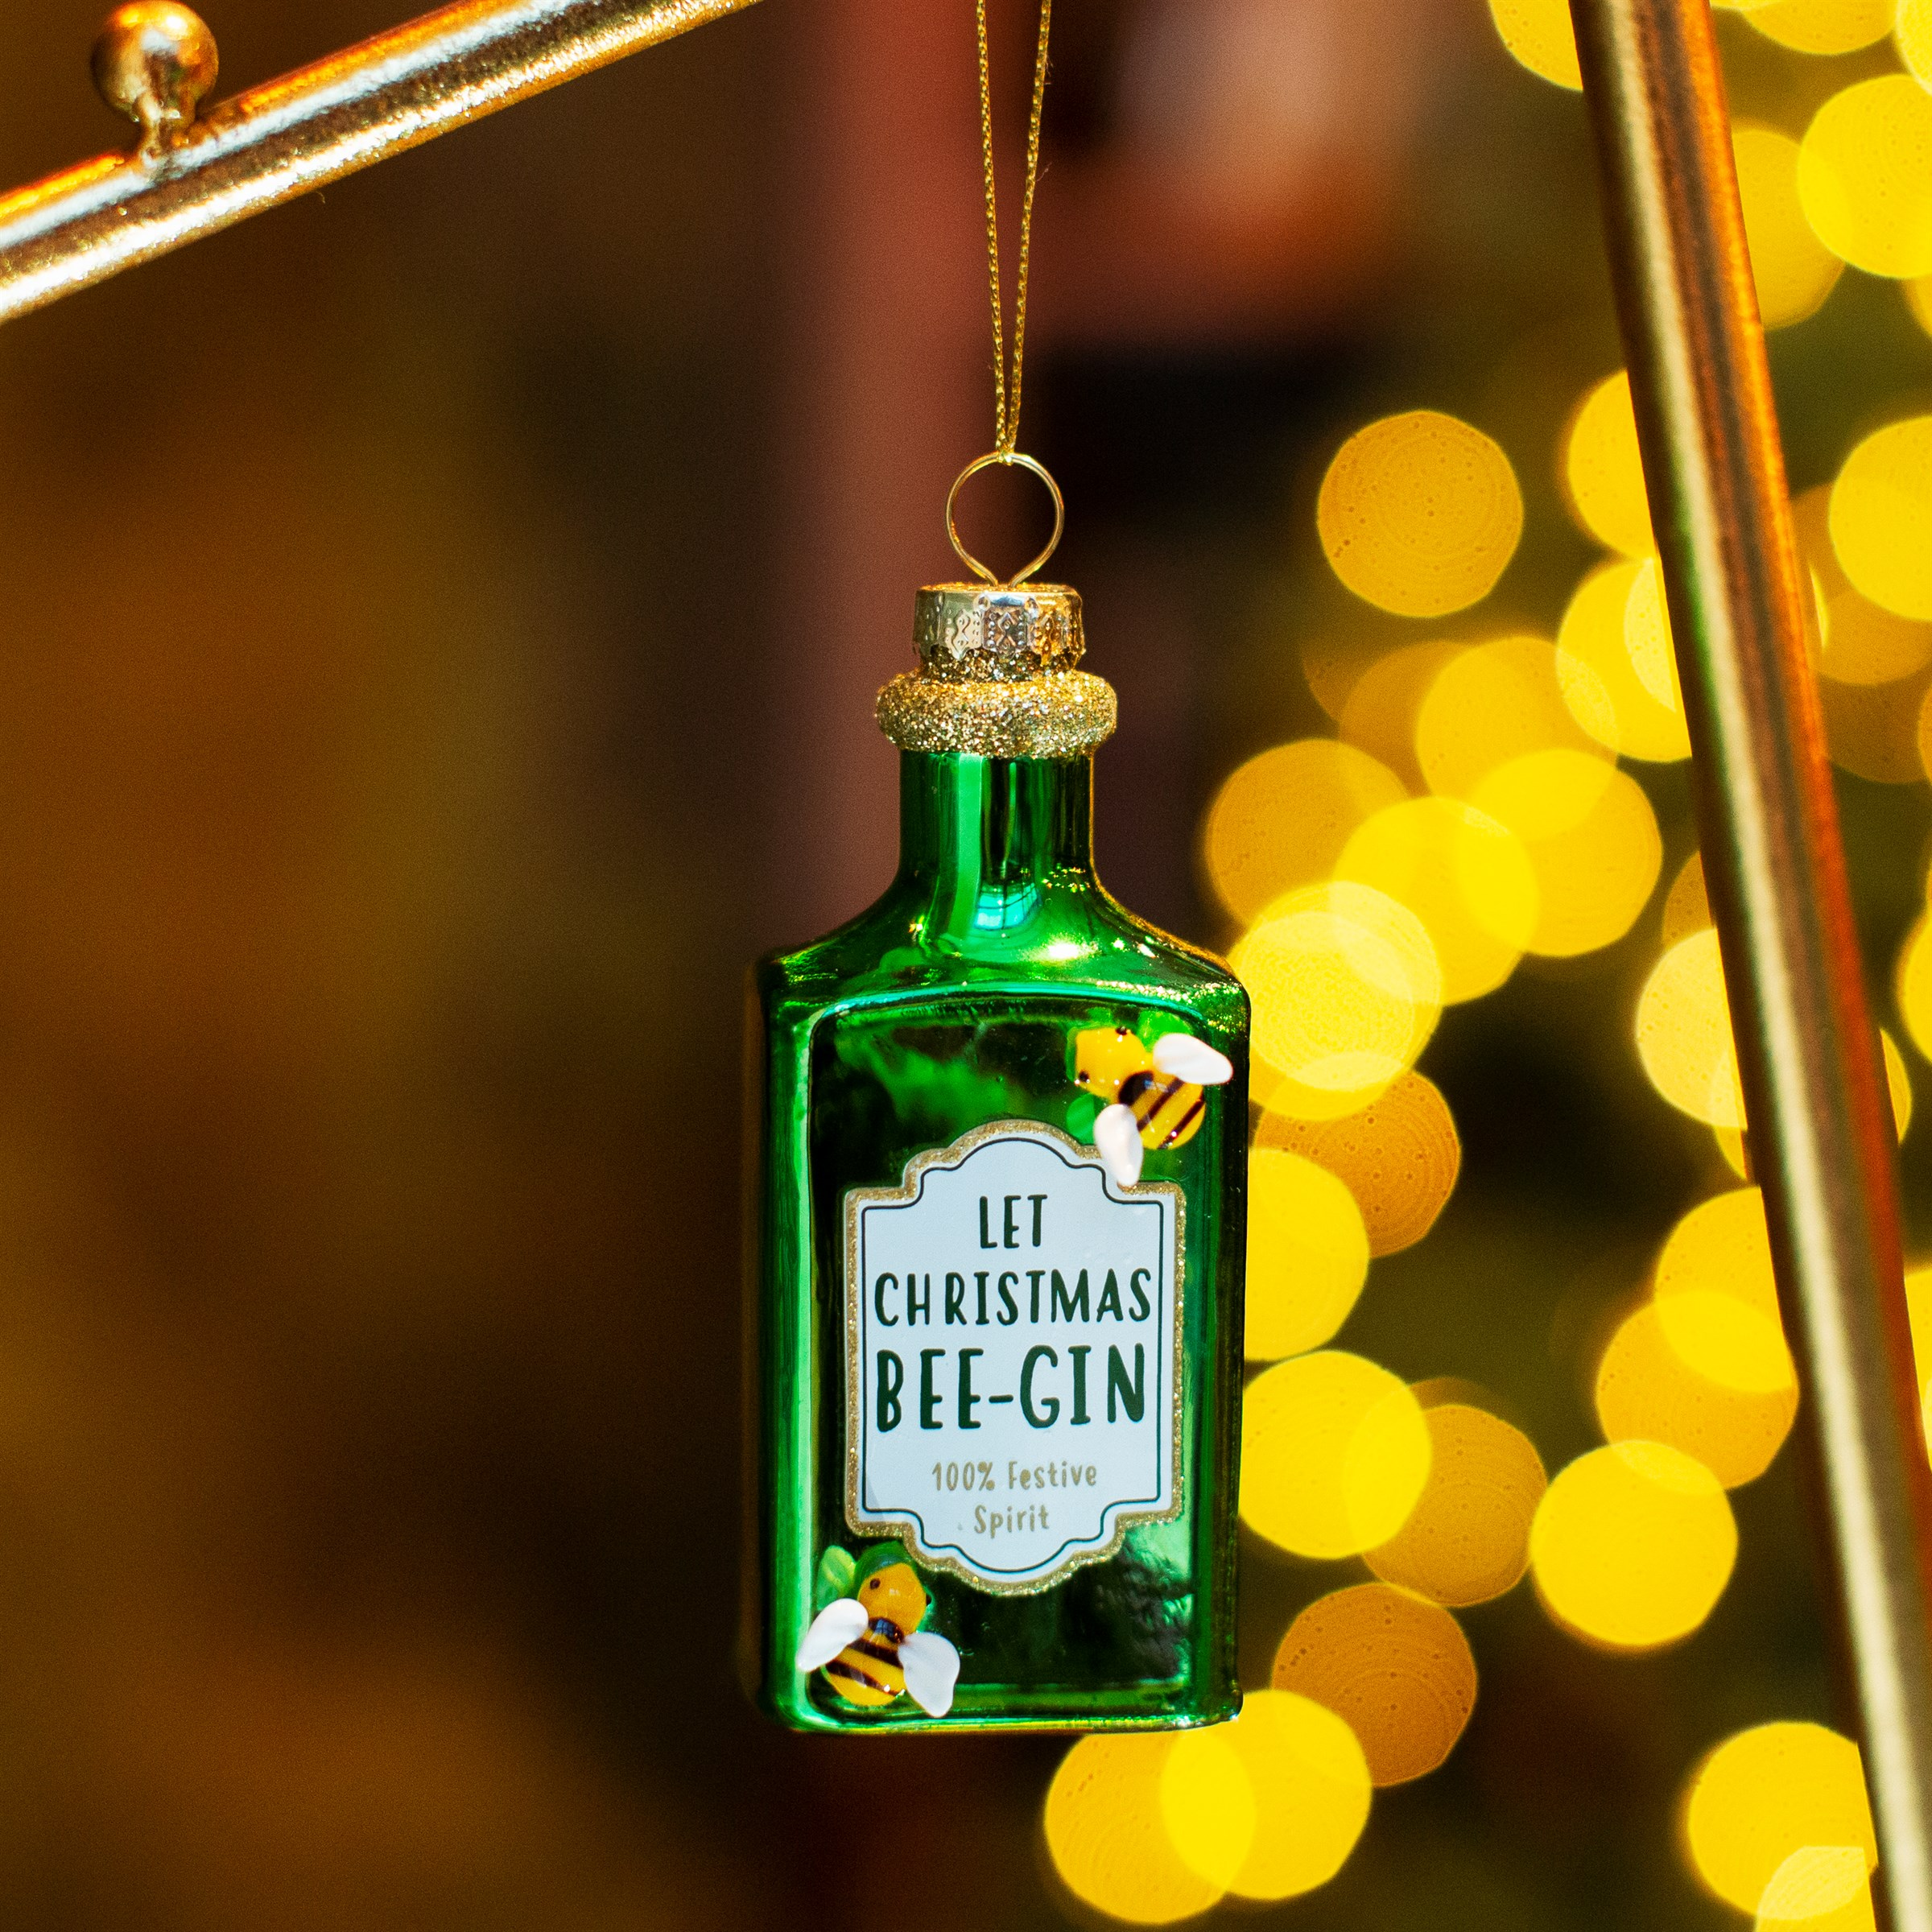 Let Christmas Bee gin  glass bauble by sass & belle